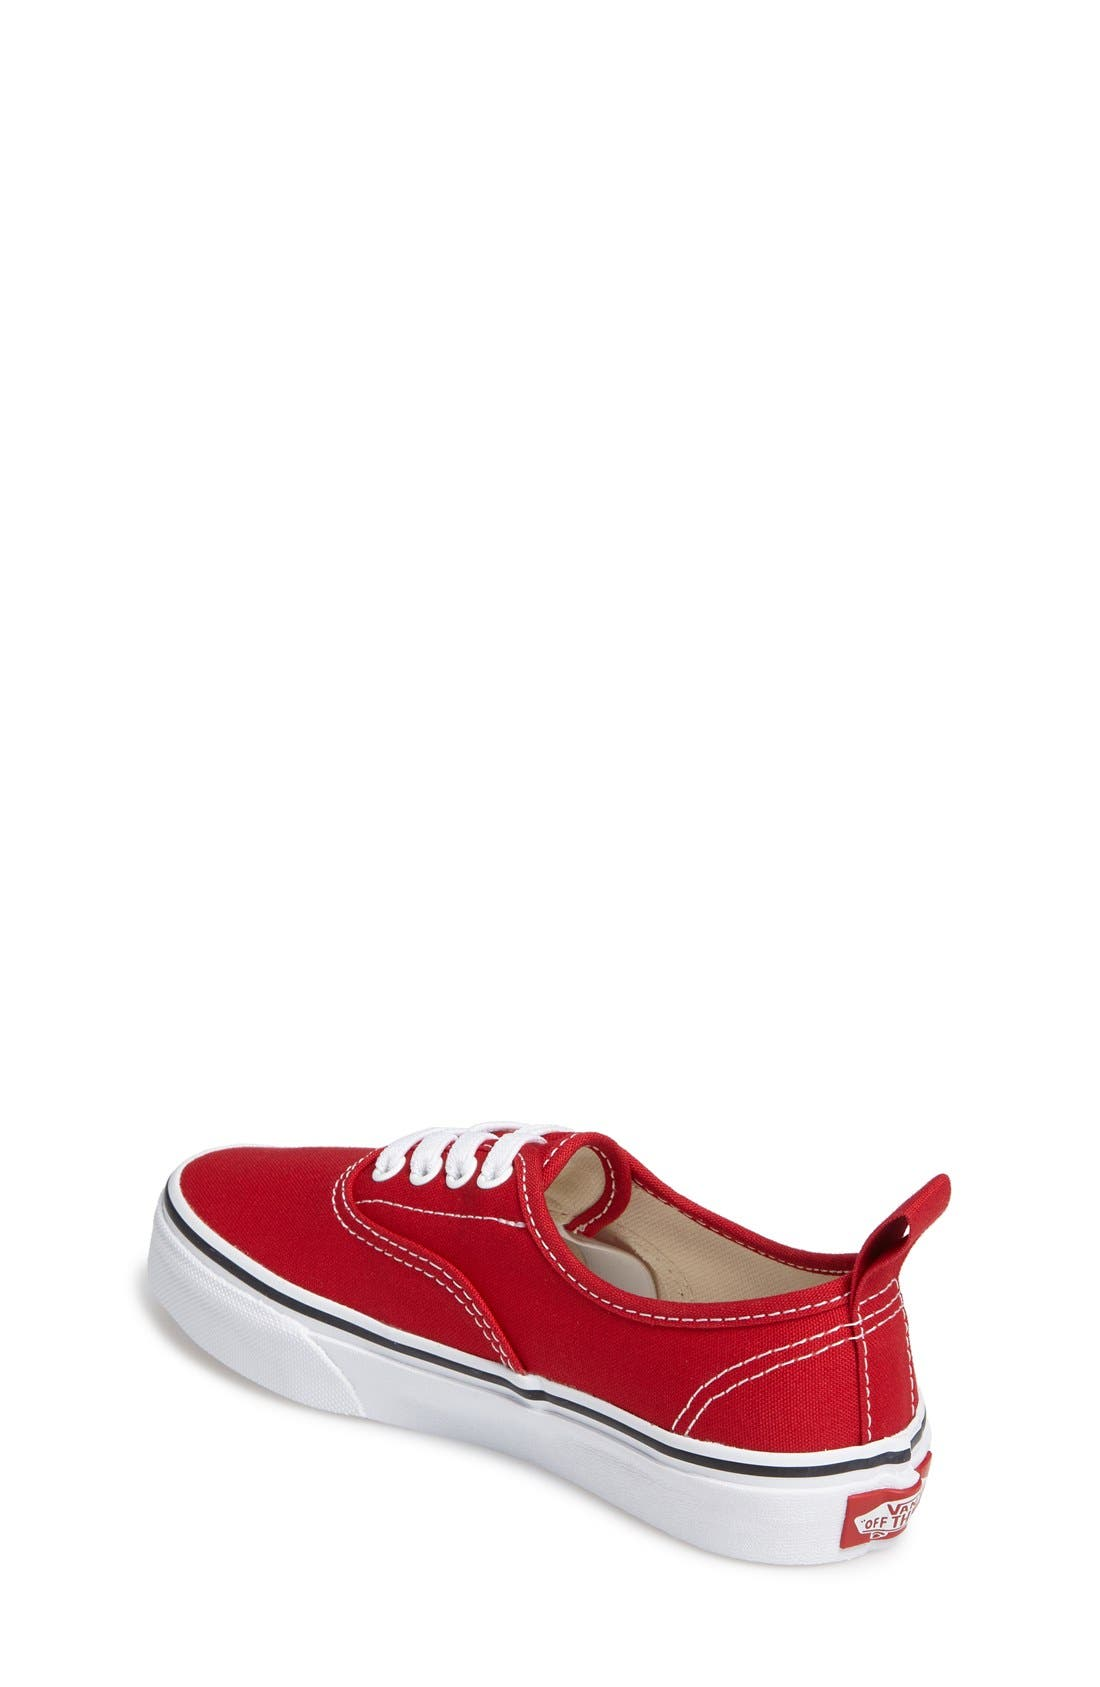 VANS, Authentic Sneaker, Alternate thumbnail 5, color, RACING RED/ TRUE WHITE